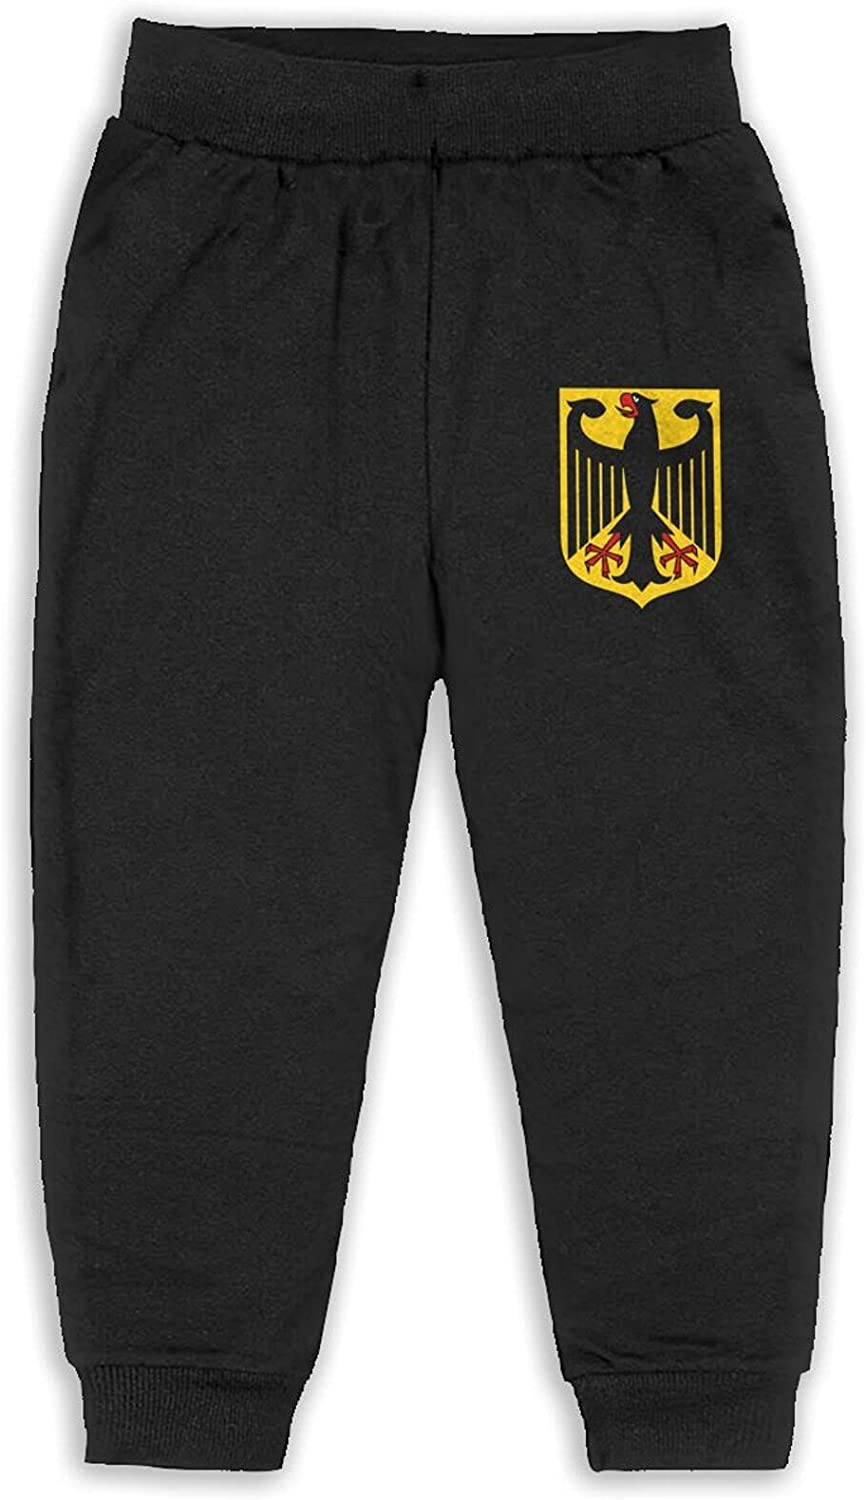 Thtfhe Unisex Kids Germany Coats of Arms Pant Cotton Hip Hop Pants Casual Pants for Girls